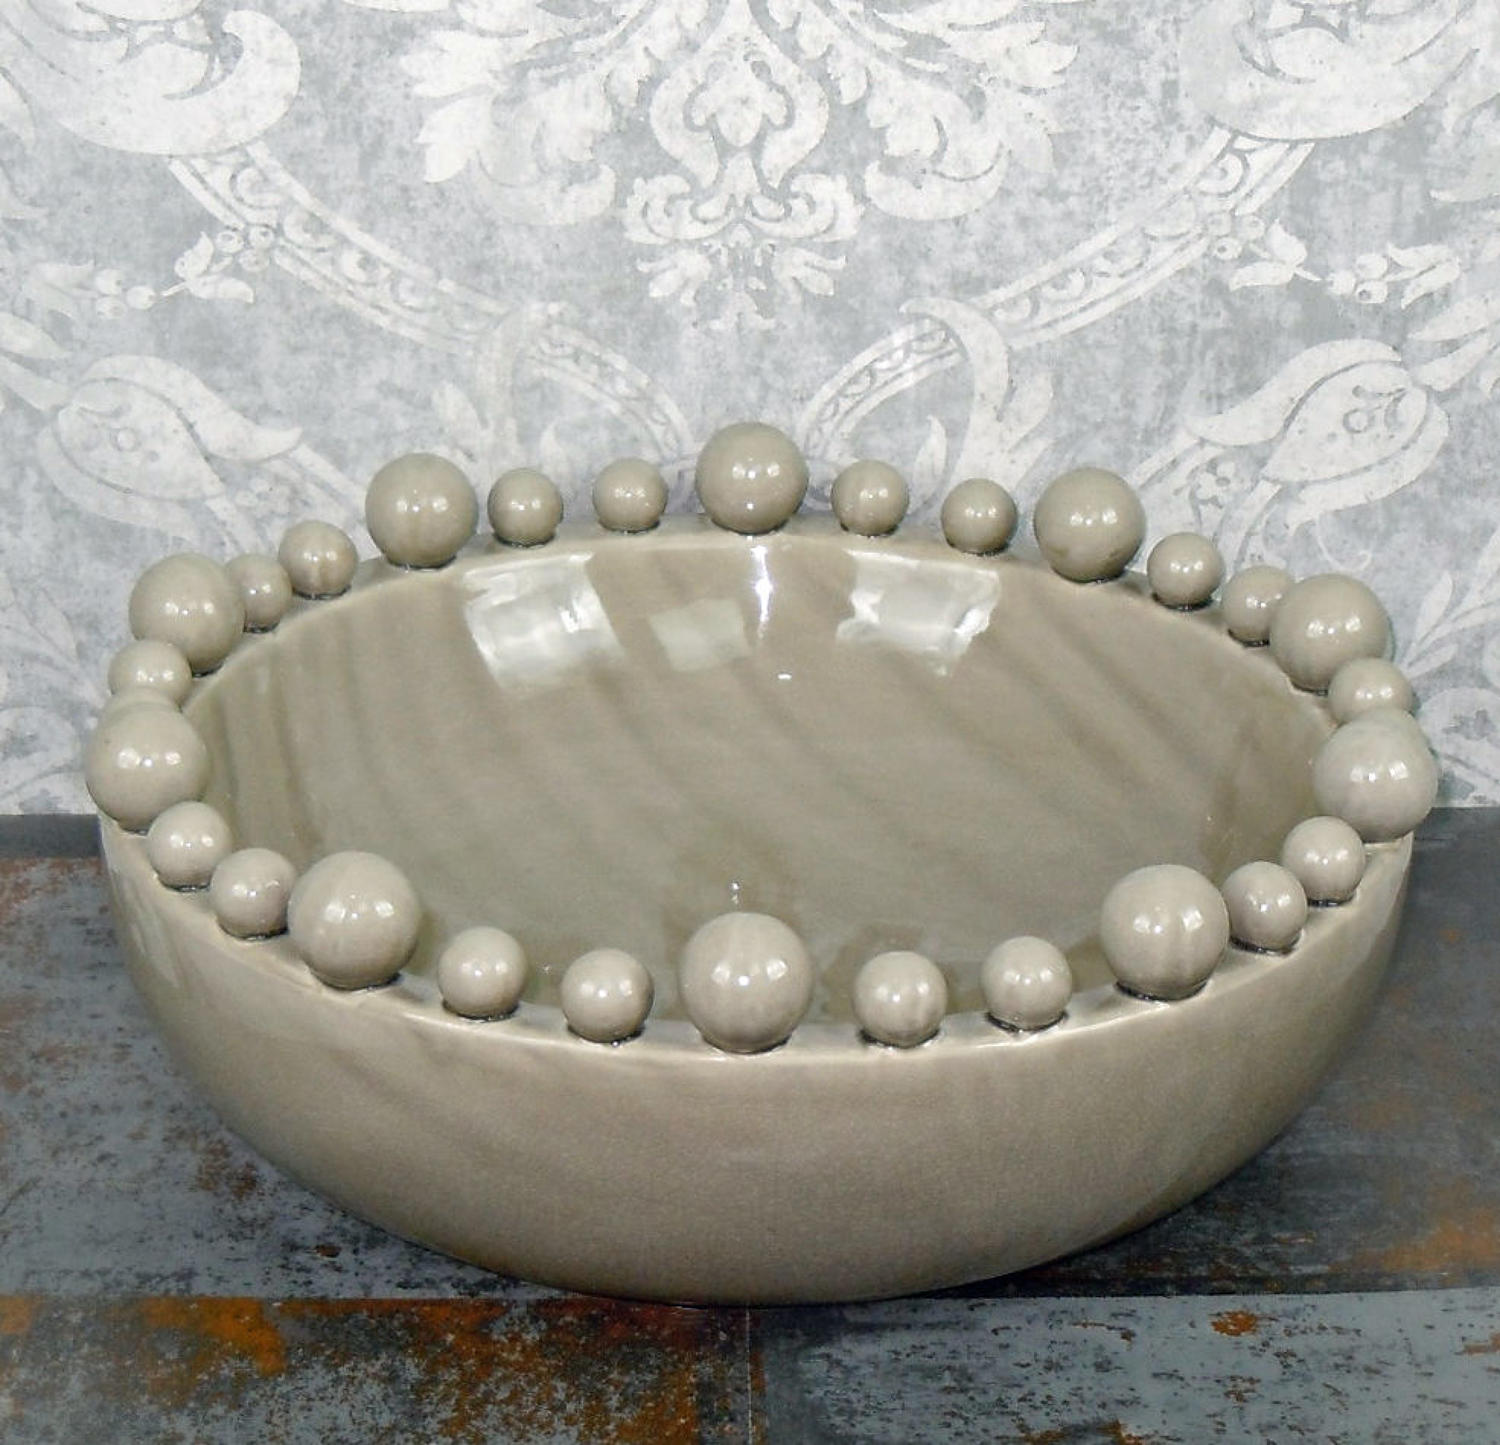 Grey ceramic bowl with balls on the rim